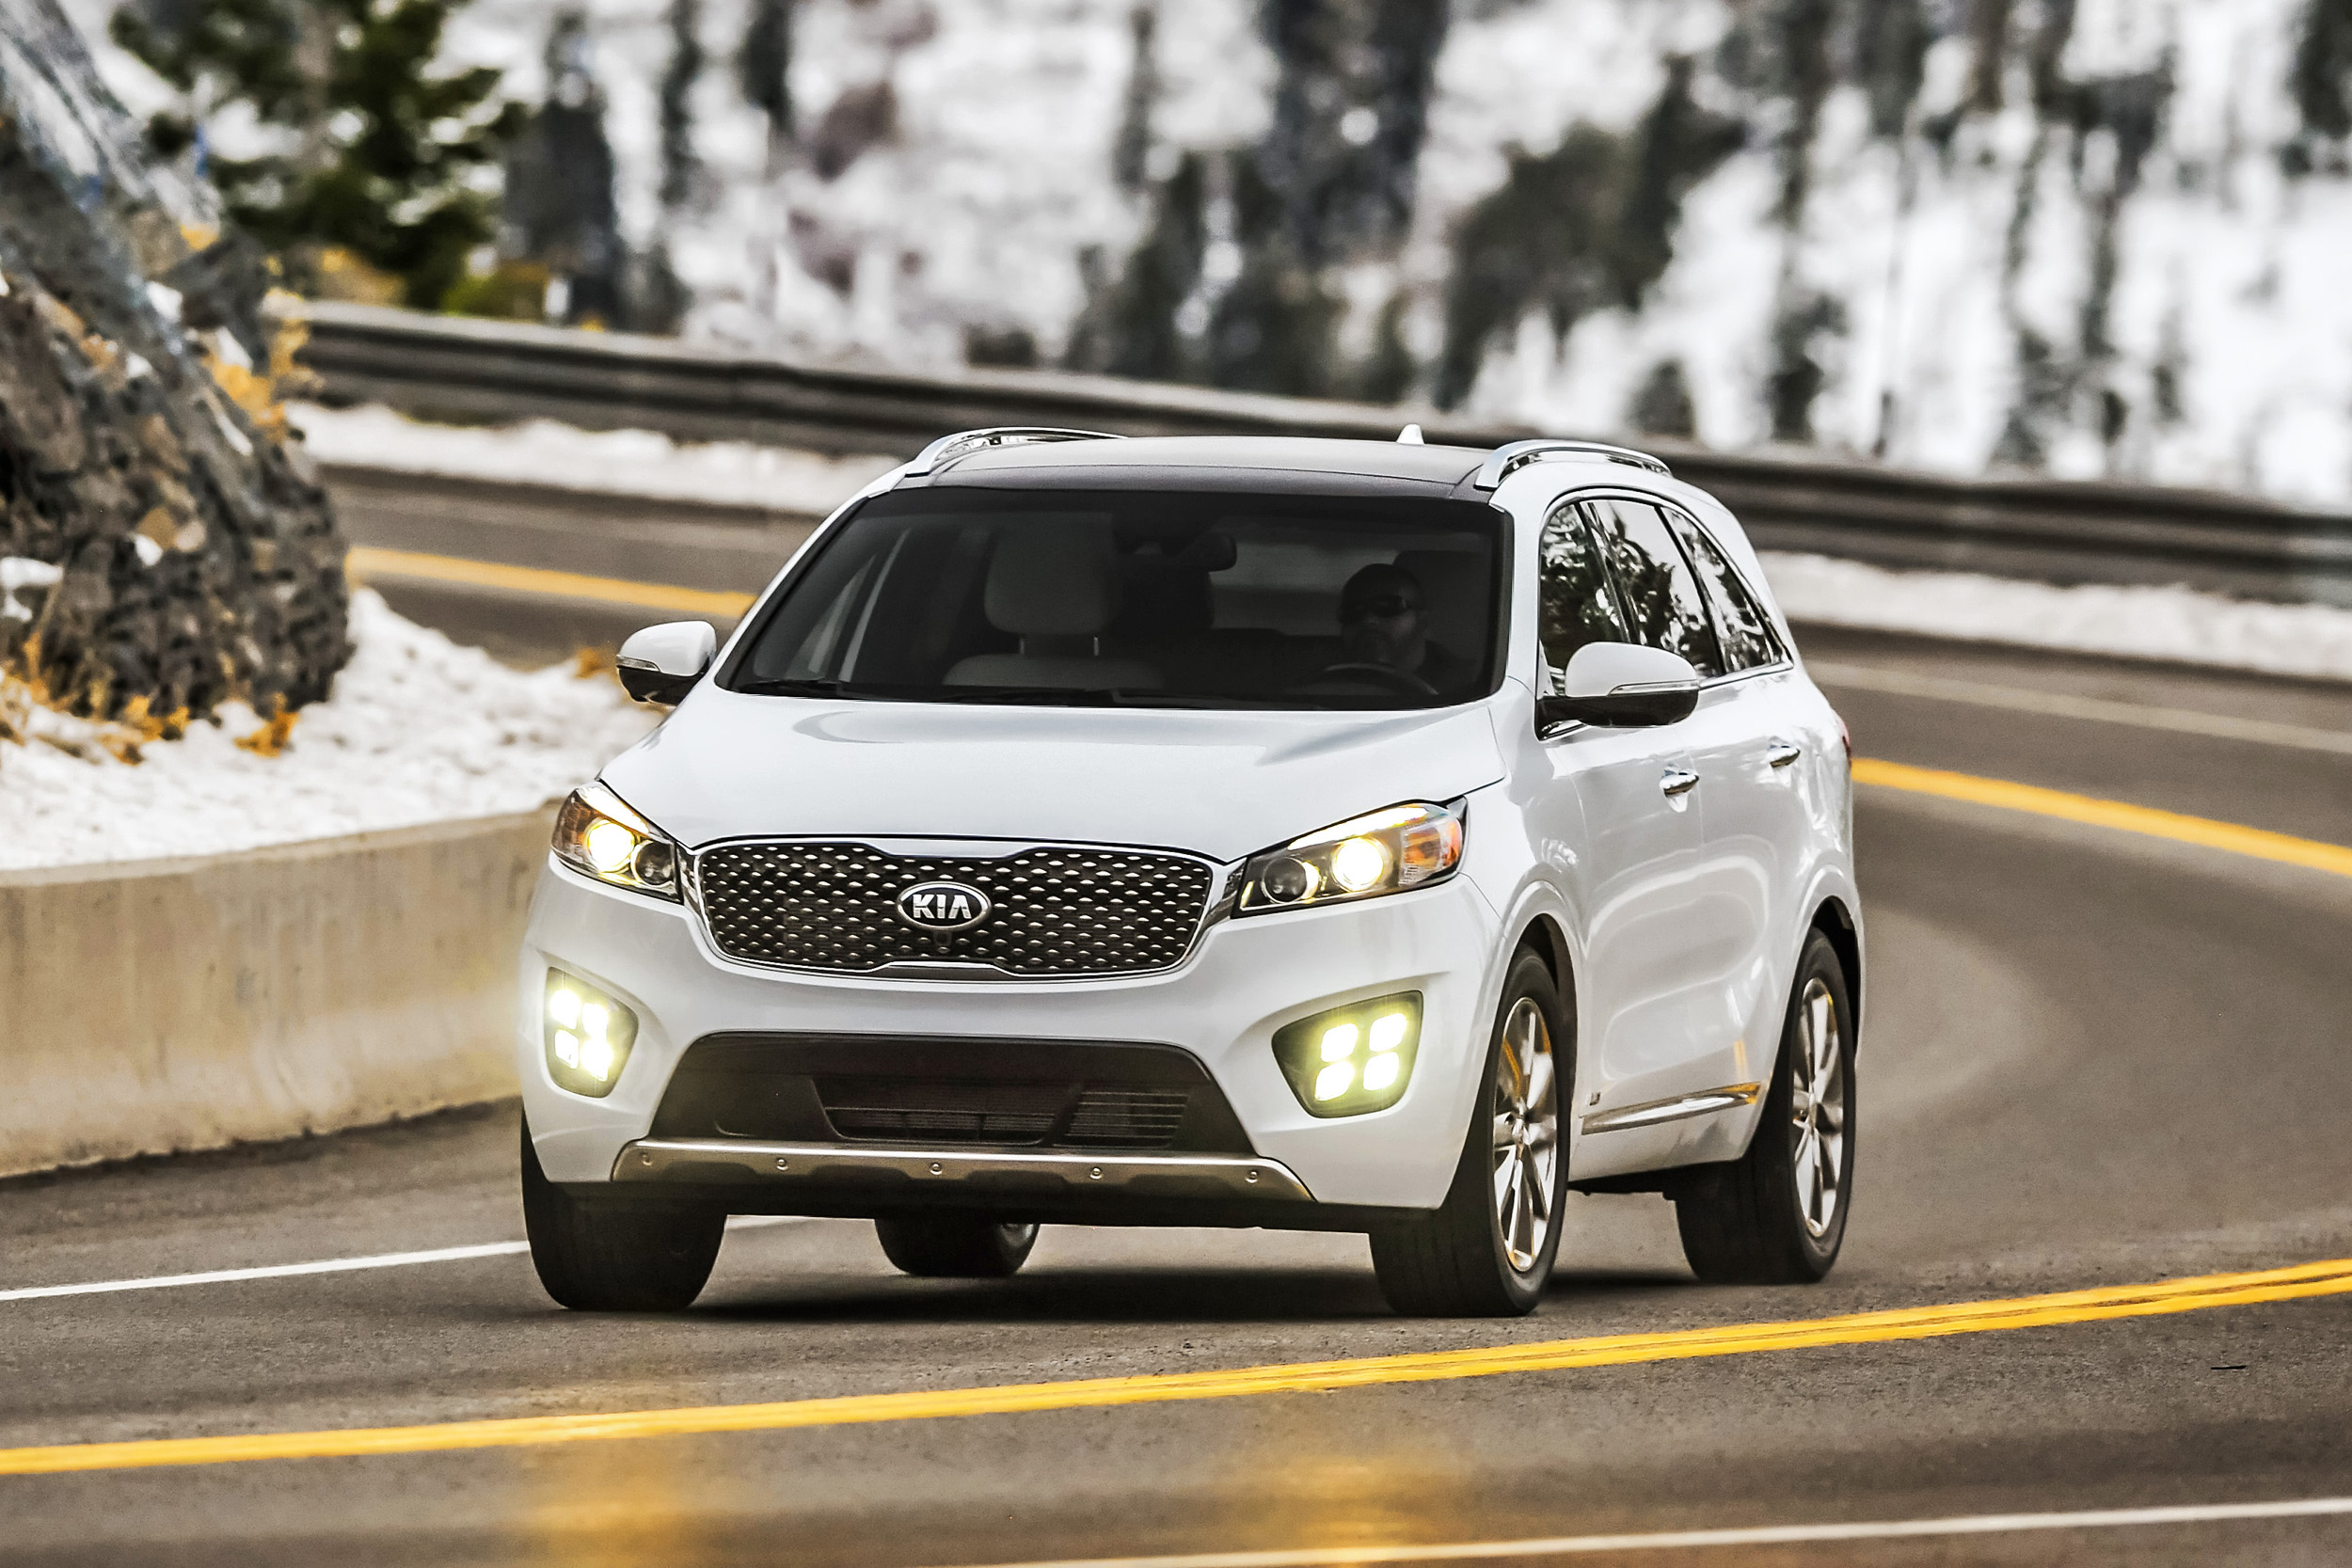 kia zombiedrive price and photos sorento information